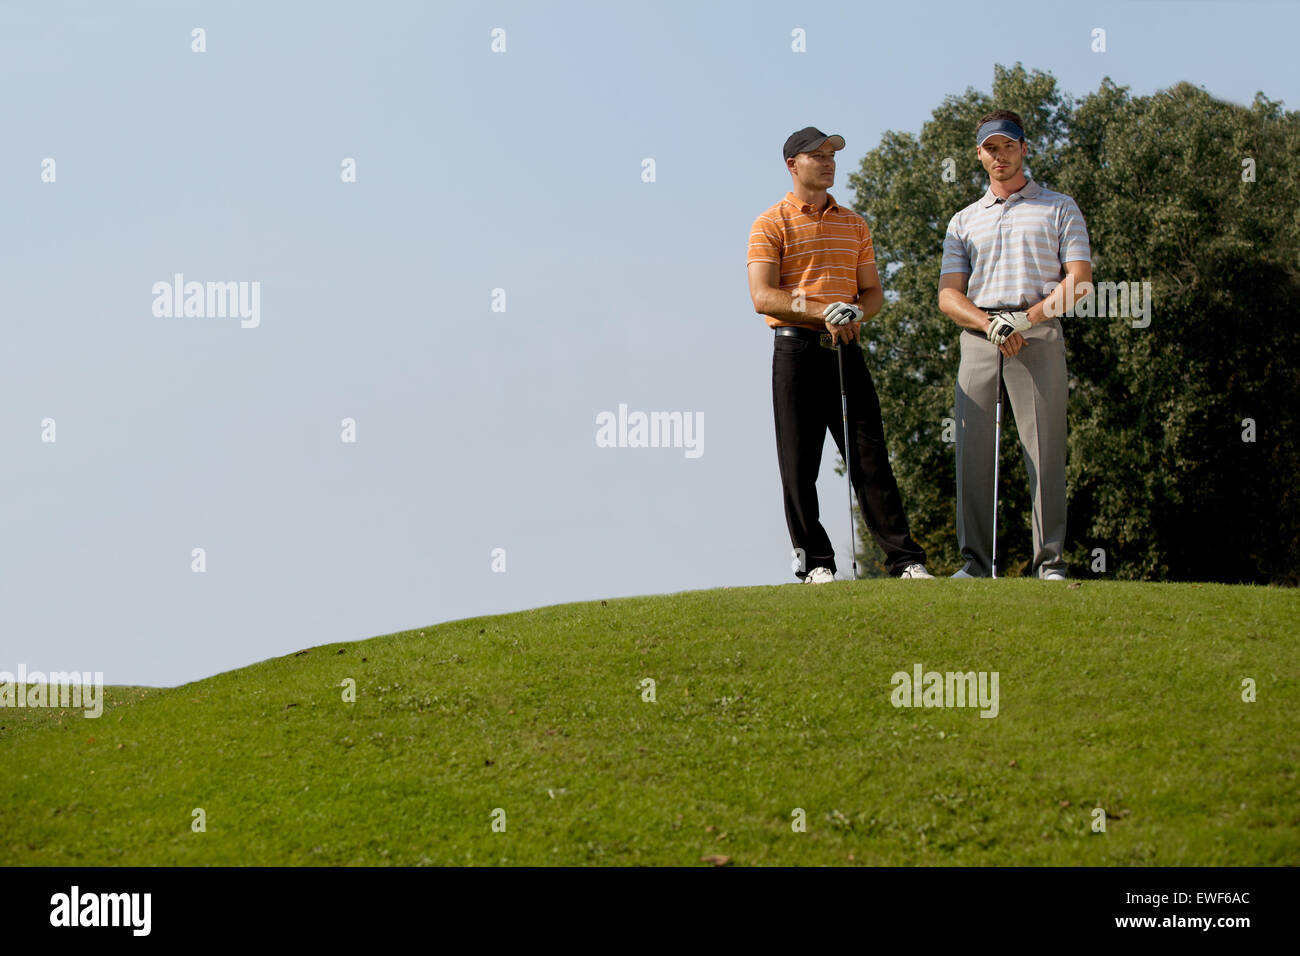 Portrait of young men standing with golf sticks on golf course - Stock Image